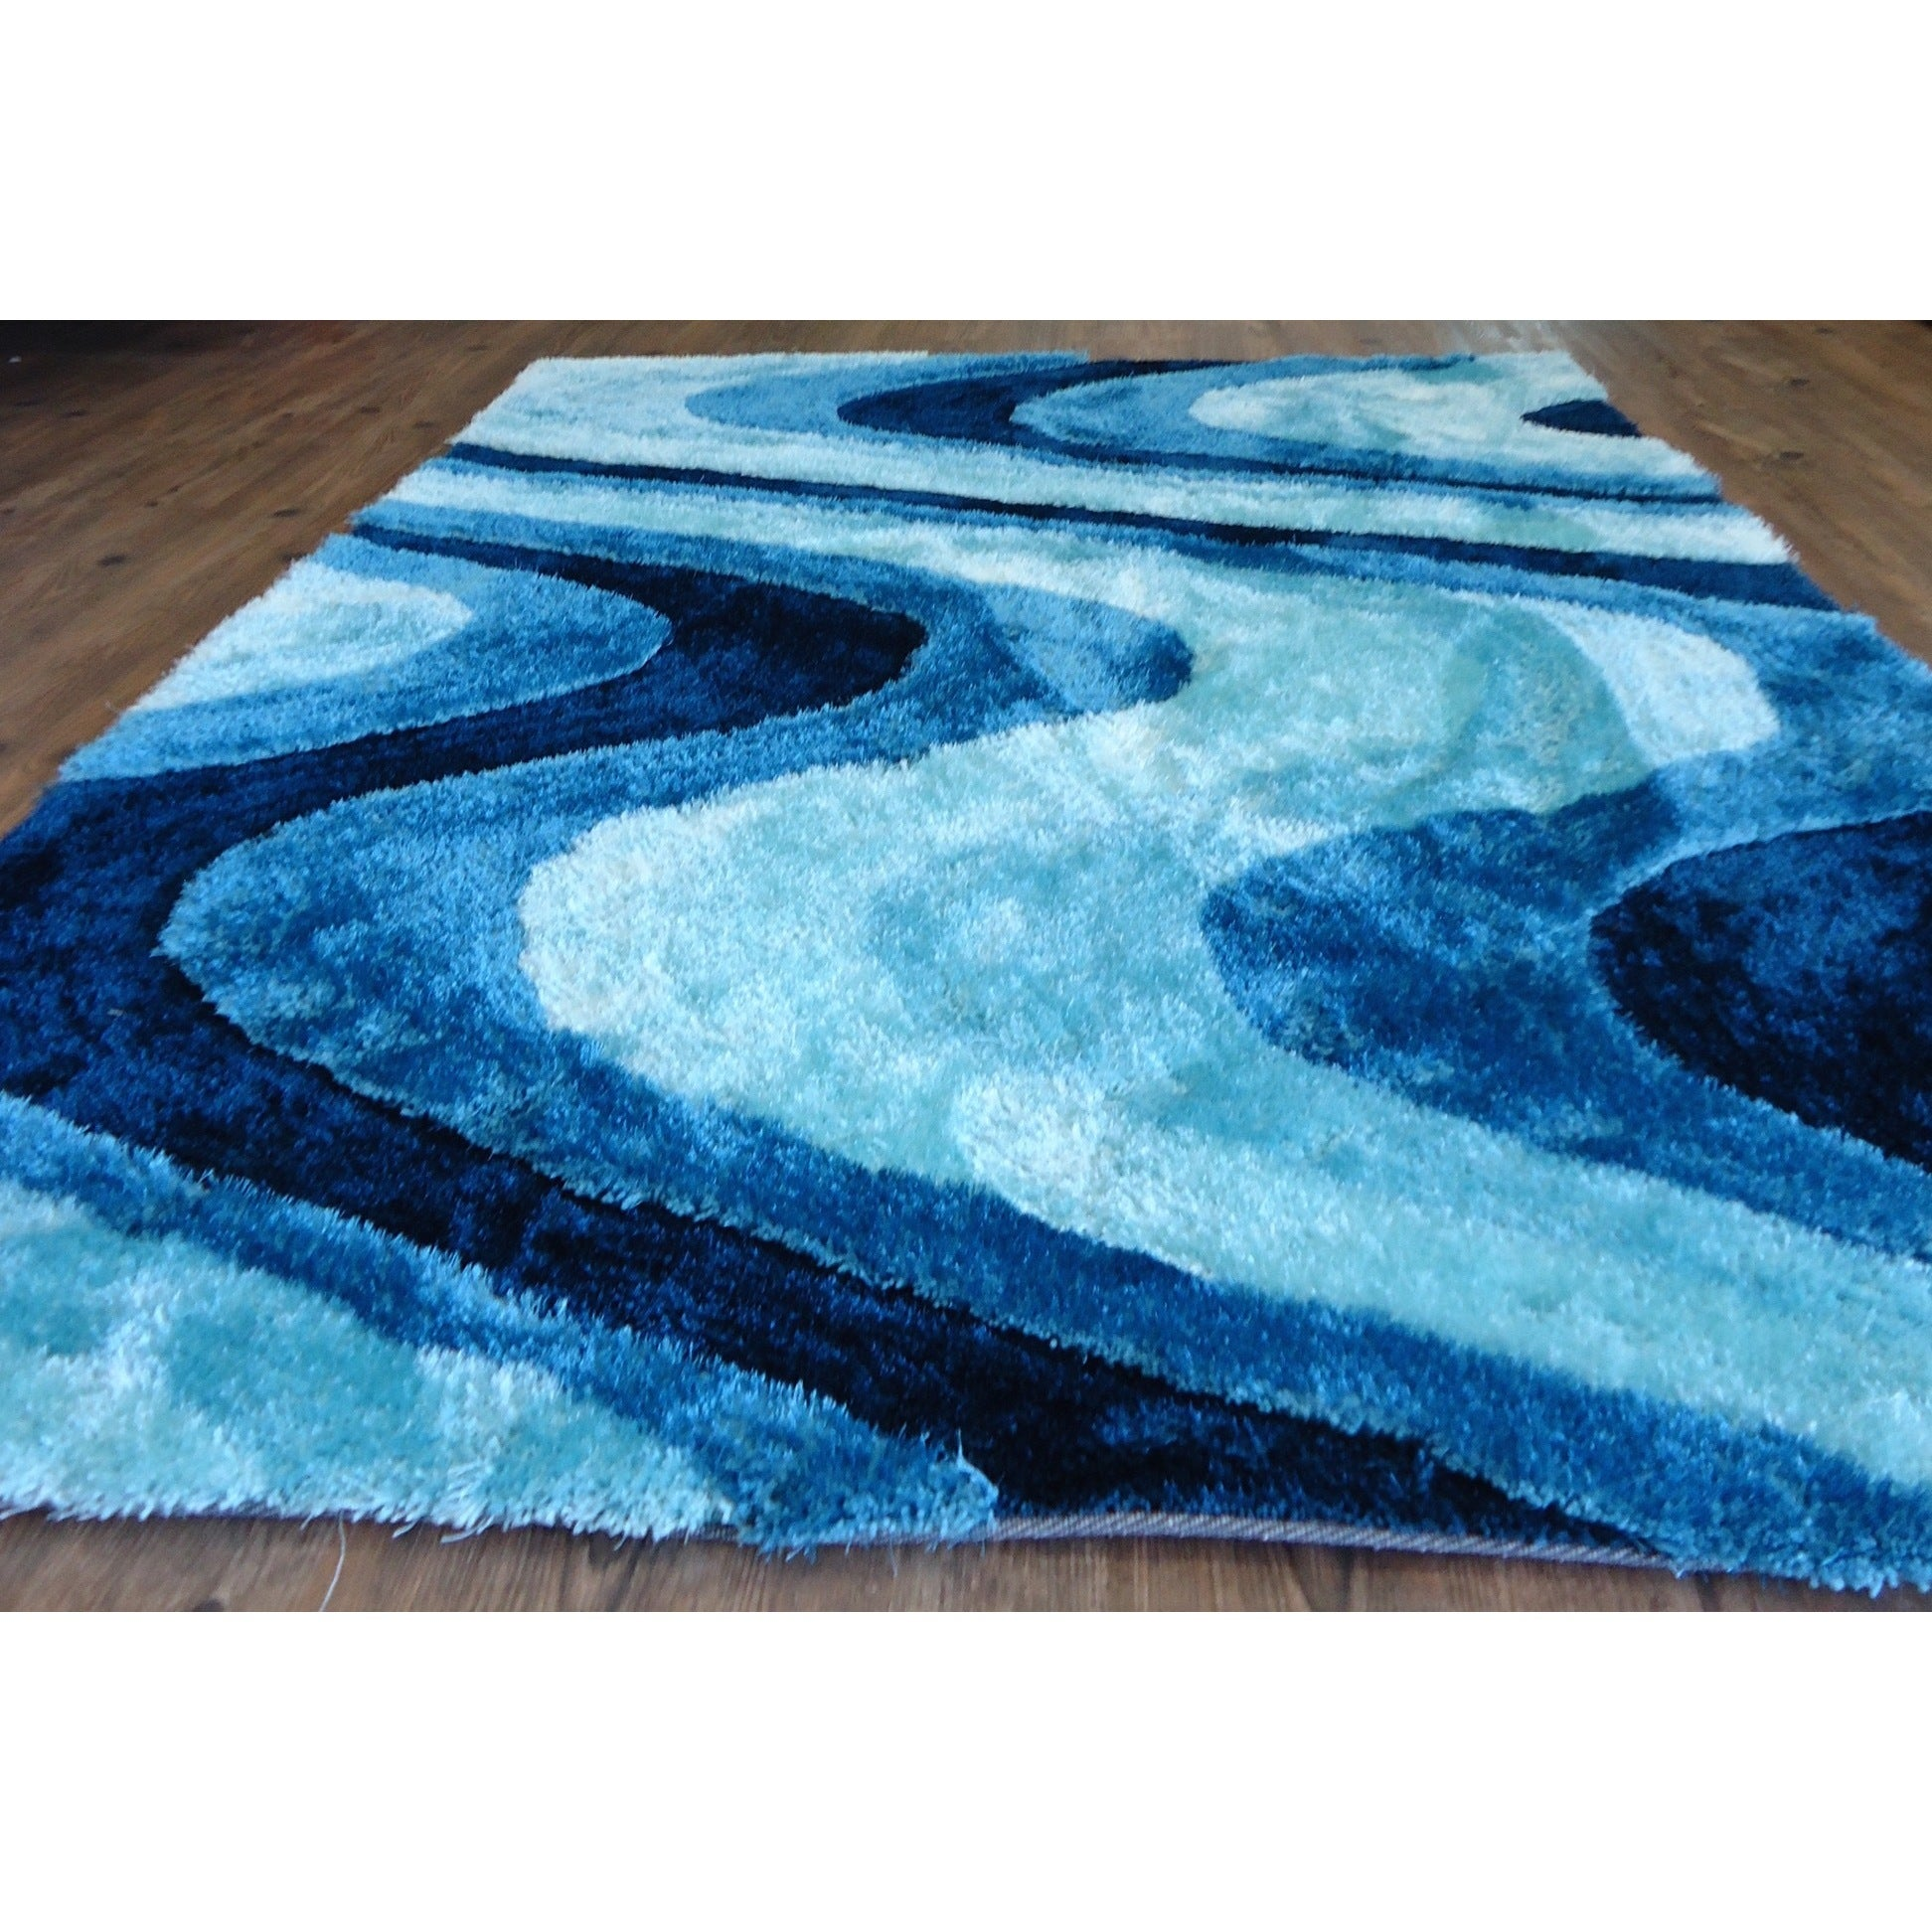 Shop Vibrant Waves Hand Tufted Turquoise Blue And Navy Blue Shag